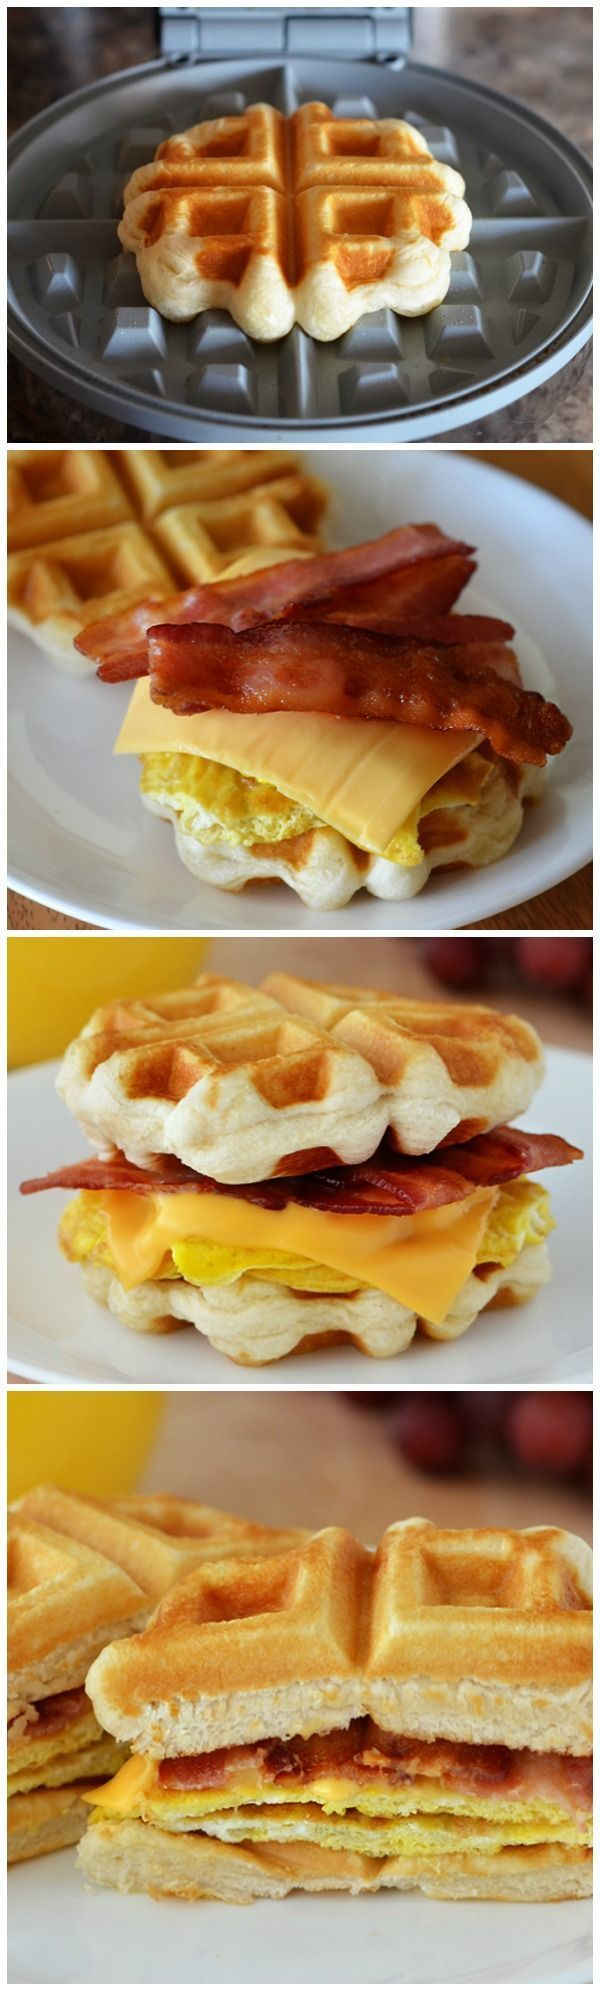 Grab-and-Go Waffle Breakfast Sandwiches Grab-and-Go Waffle Breakfast Sandwiches from Grands! biscuits. - my brother's would love these. T'would be easy enough to freeze too. Waffle Breakfast Sandwiches Grab-and-Go Waffle Breakfast Sandwiches from Grands! biscuits. - my brother's would love these. T'would be easy enough to freeze too.Grab-and-Go Waffle Breakfast Sandwiches from Grands! biscuits. - my brother's would love these. T'would be easy enough to freeze too.